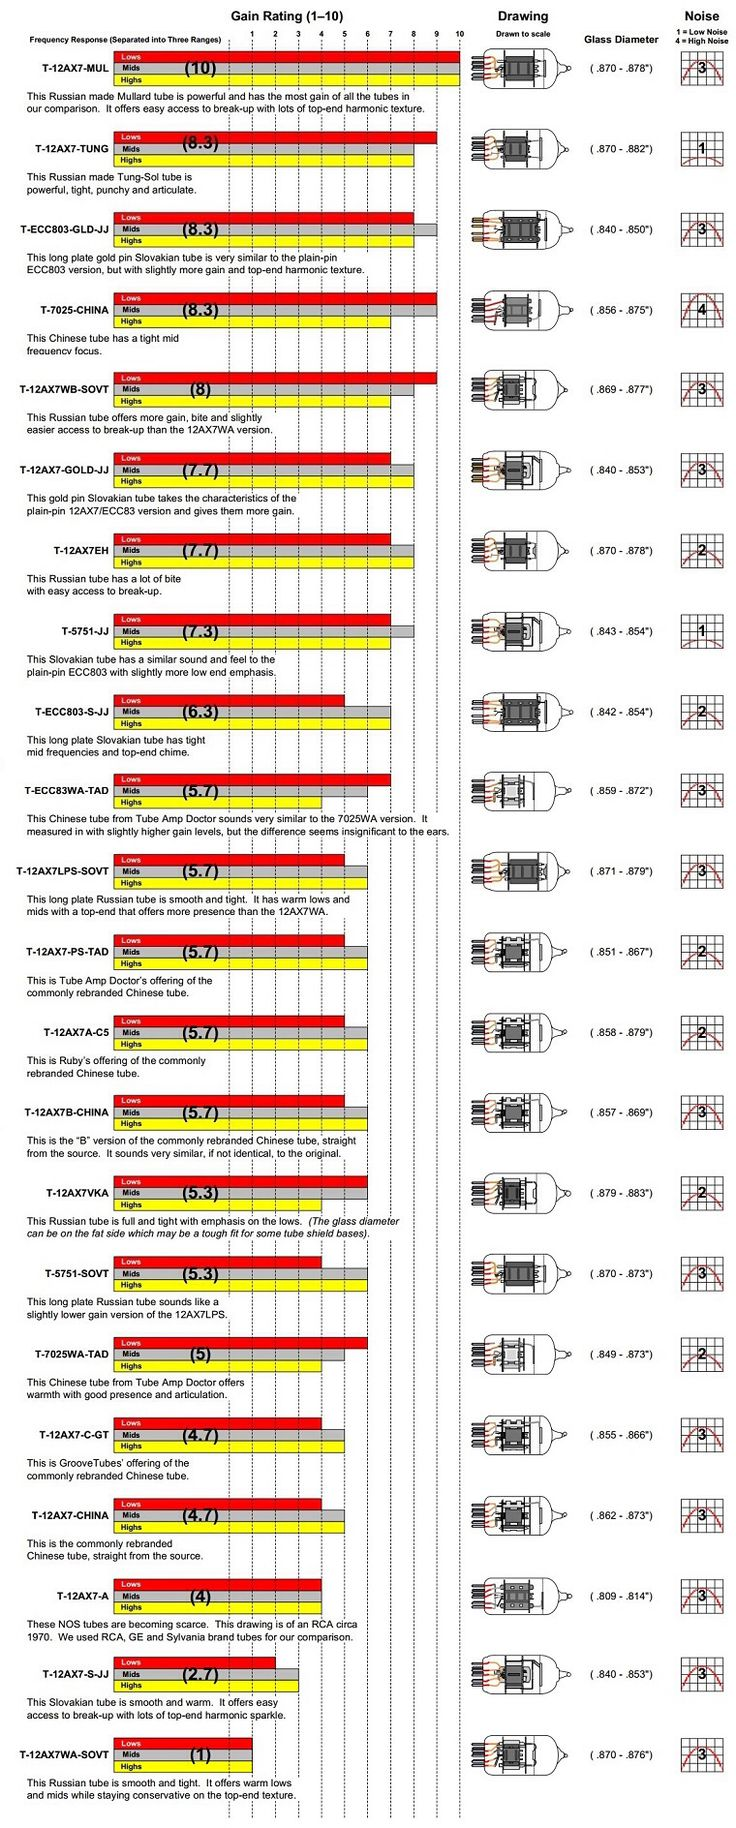 485 Best Electronics Dyi Images On Pinterest Electrical Circuitlab Test Lm 317 Voltage Regulator Good Reference For Selecting Replacement Pre Amp Tubes 12ax7